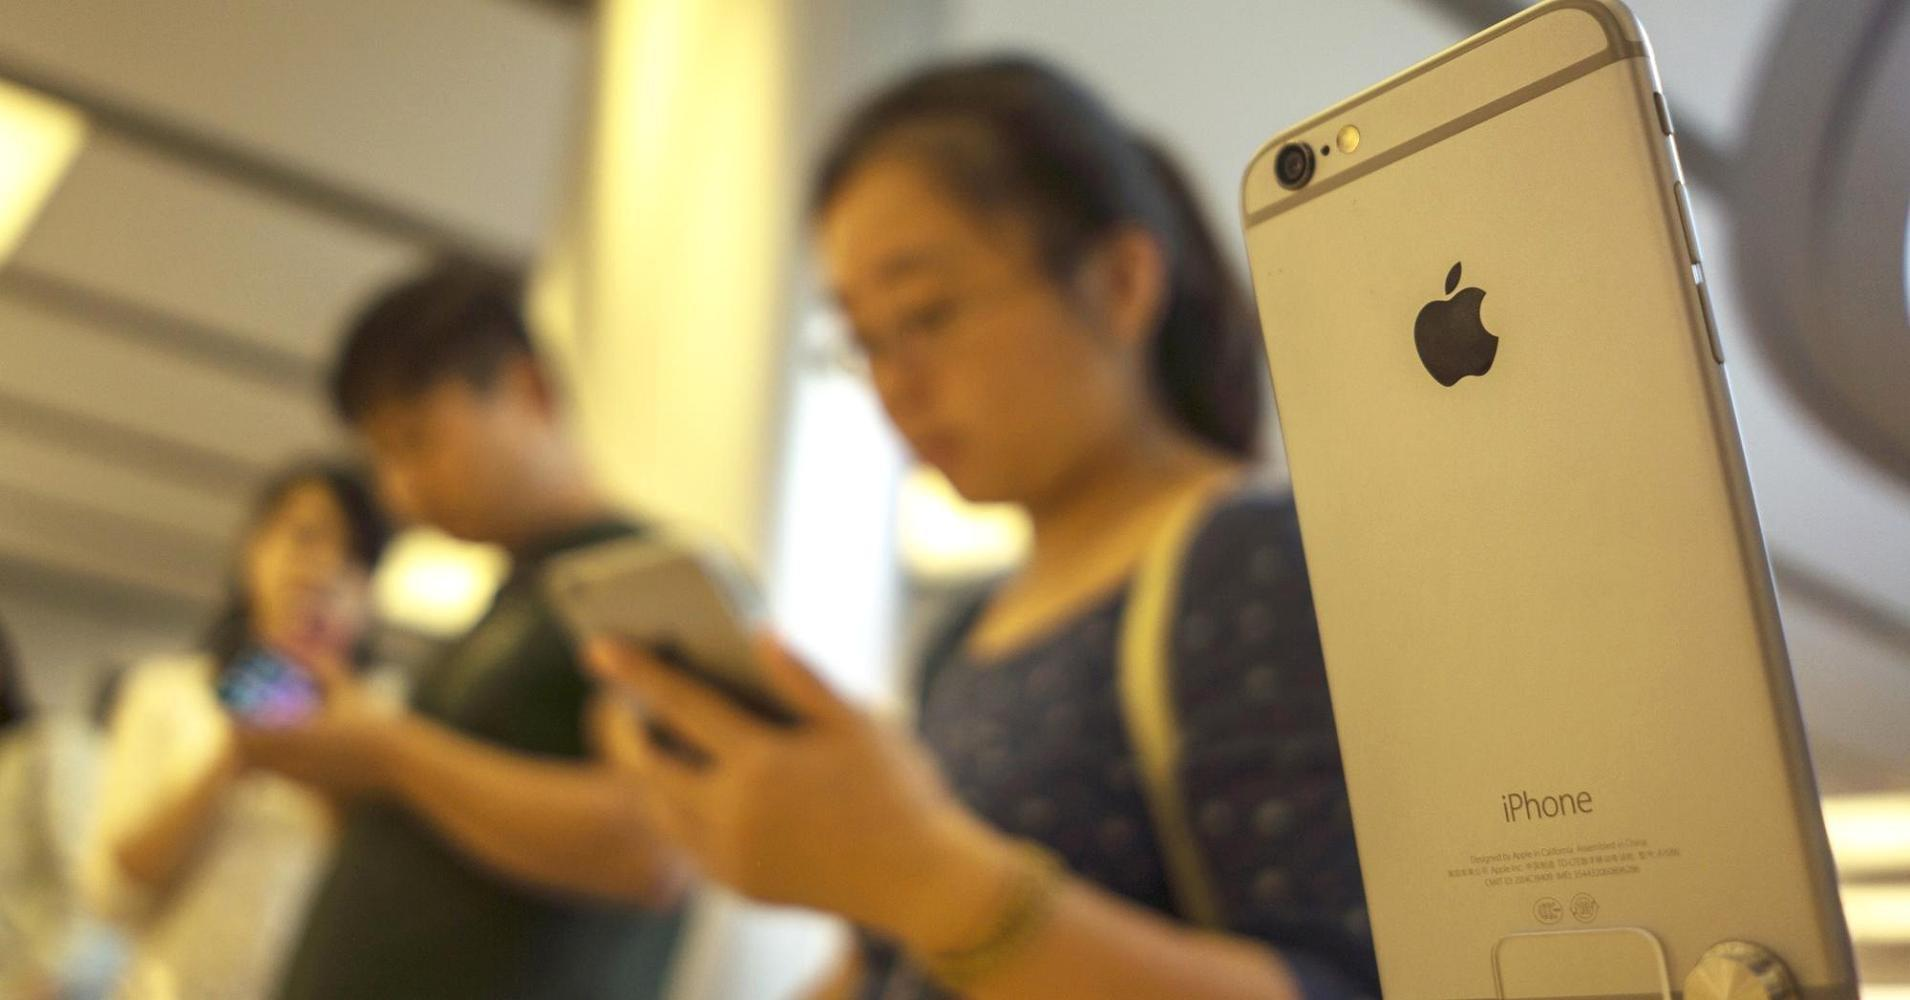 Apple still has growth room in China: Analyst